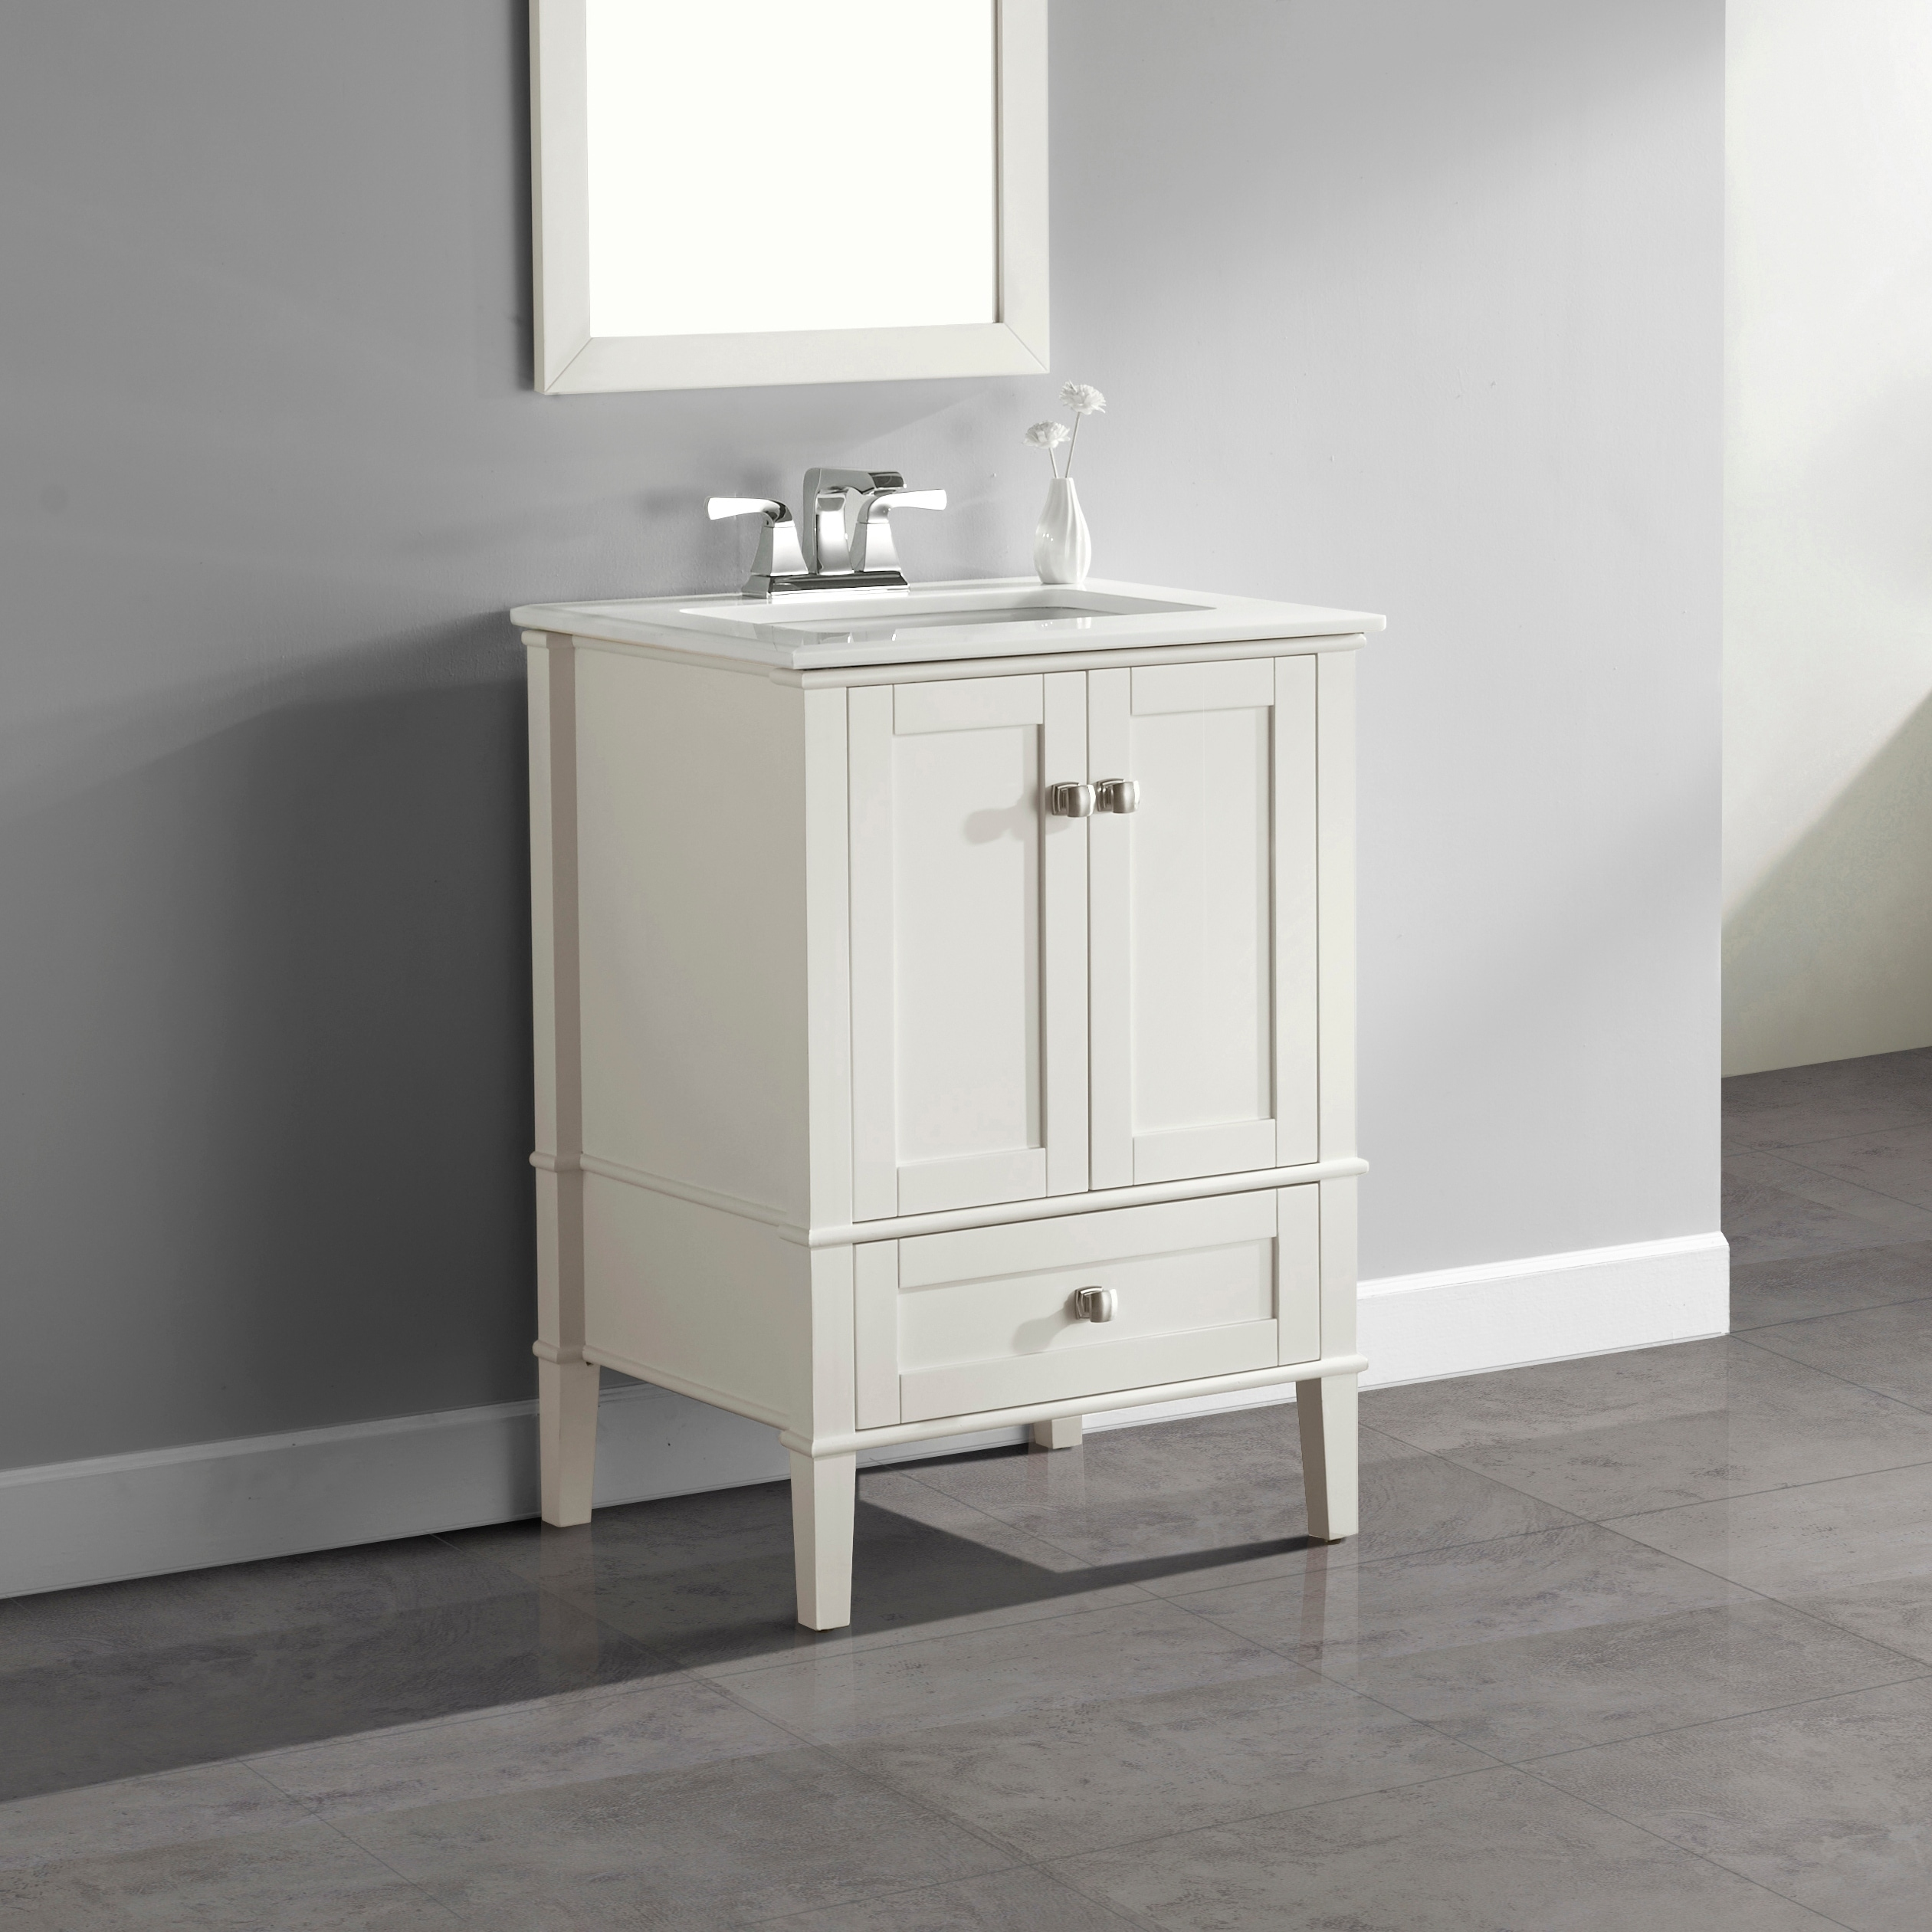 24 Inch Bathroom Vanity | Shop Windham 24 Inch Bath Vanity In Soft White With White Engineered